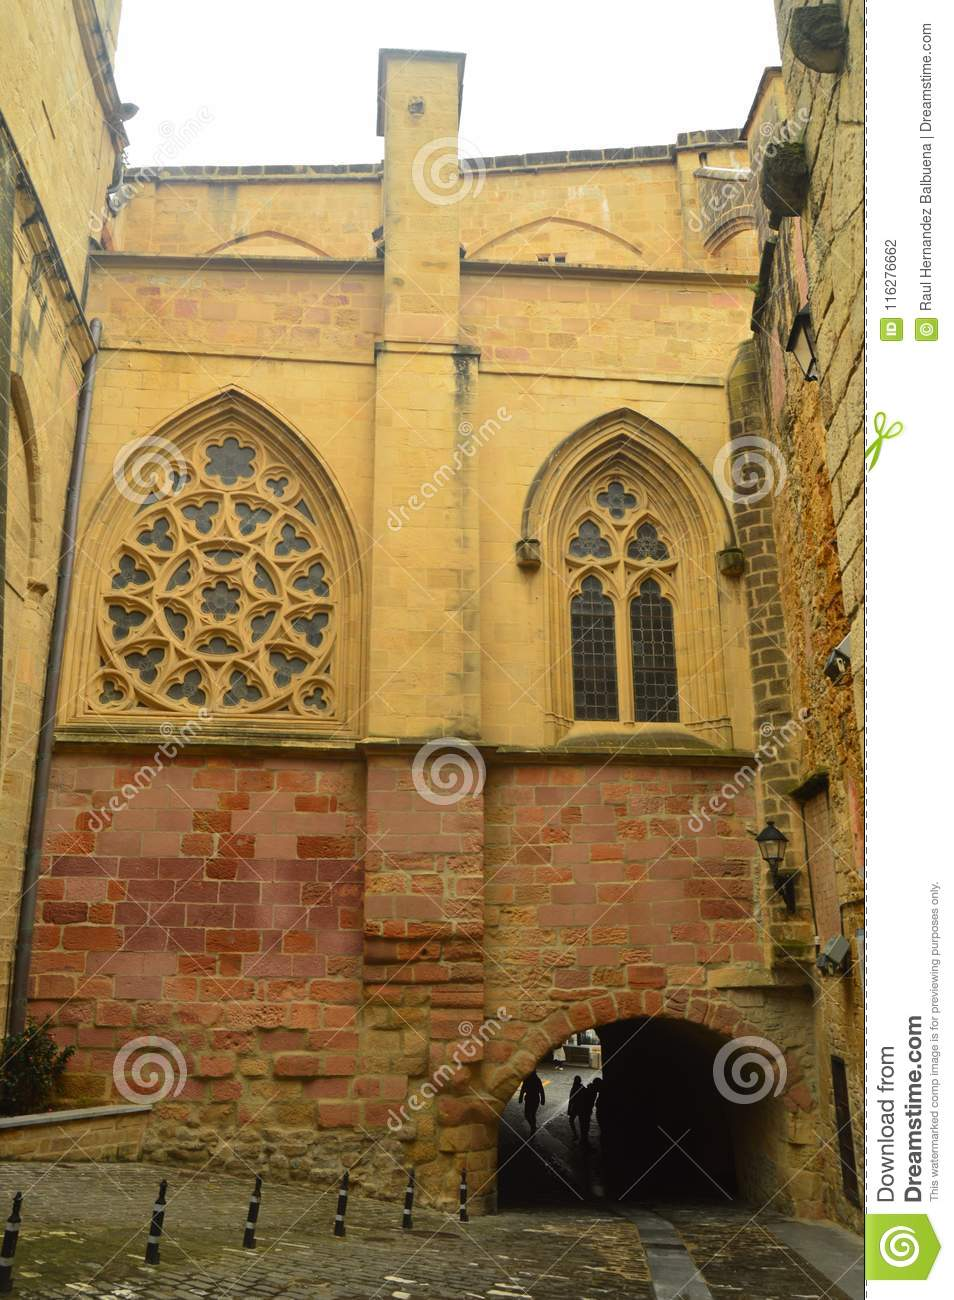 Masterly Cathedral With Its Abovered Windows In The Fortified Town Of Getaria. Architecture Middle Ages Travel.